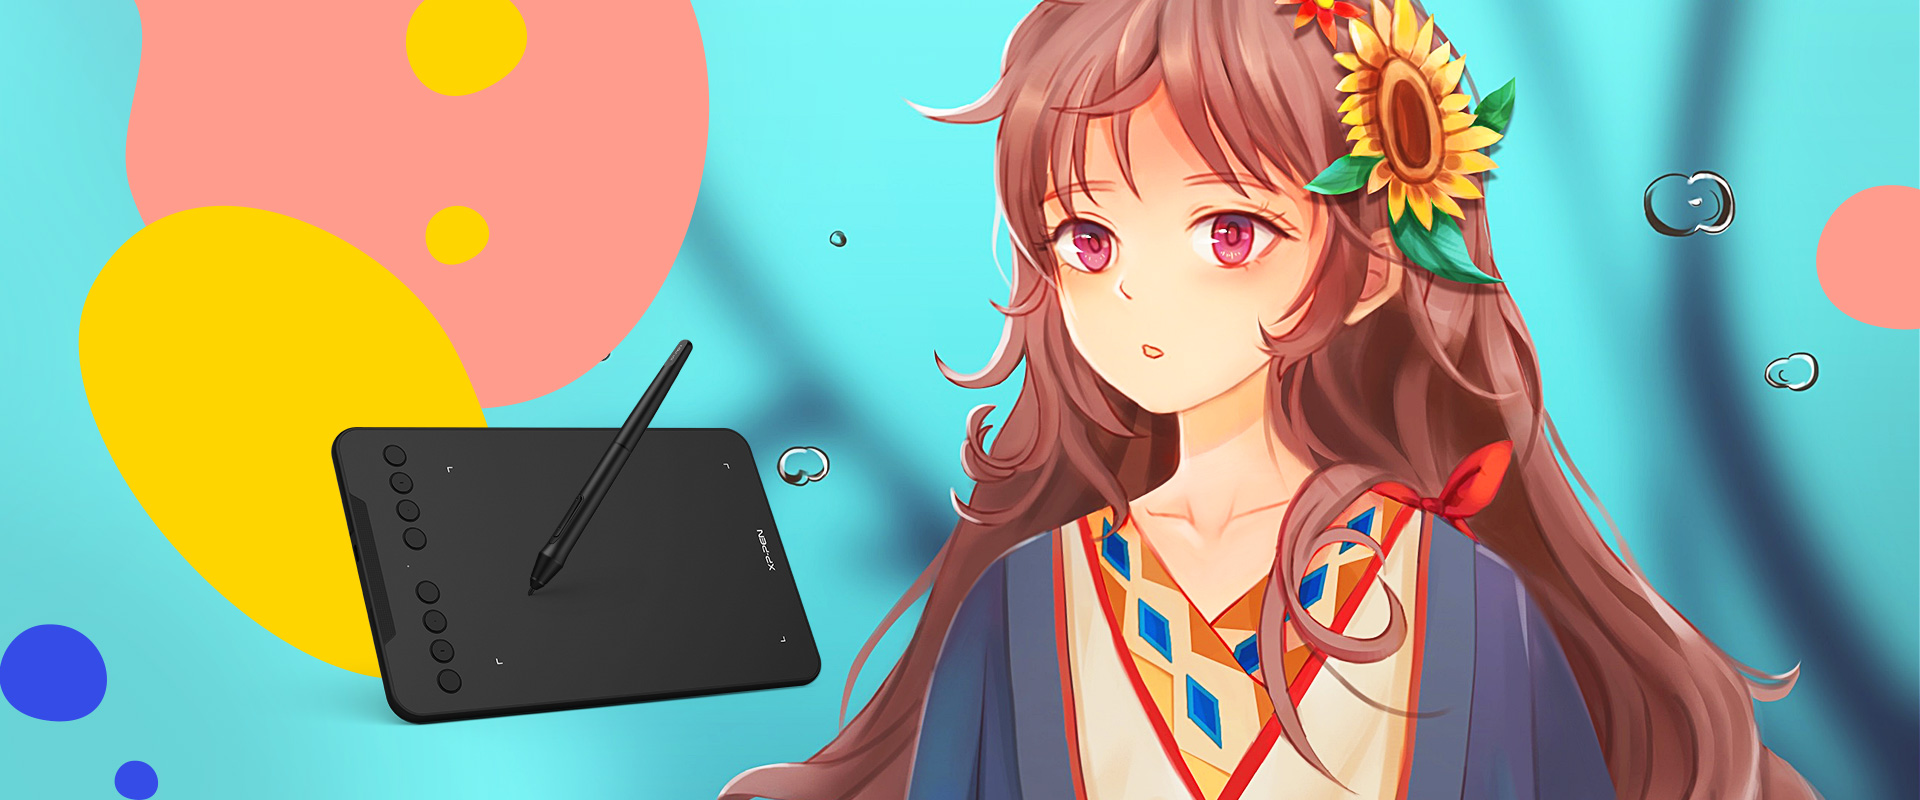 Create anytime, anywhere with XP-Pen Deco mini7 digital drawing tablet